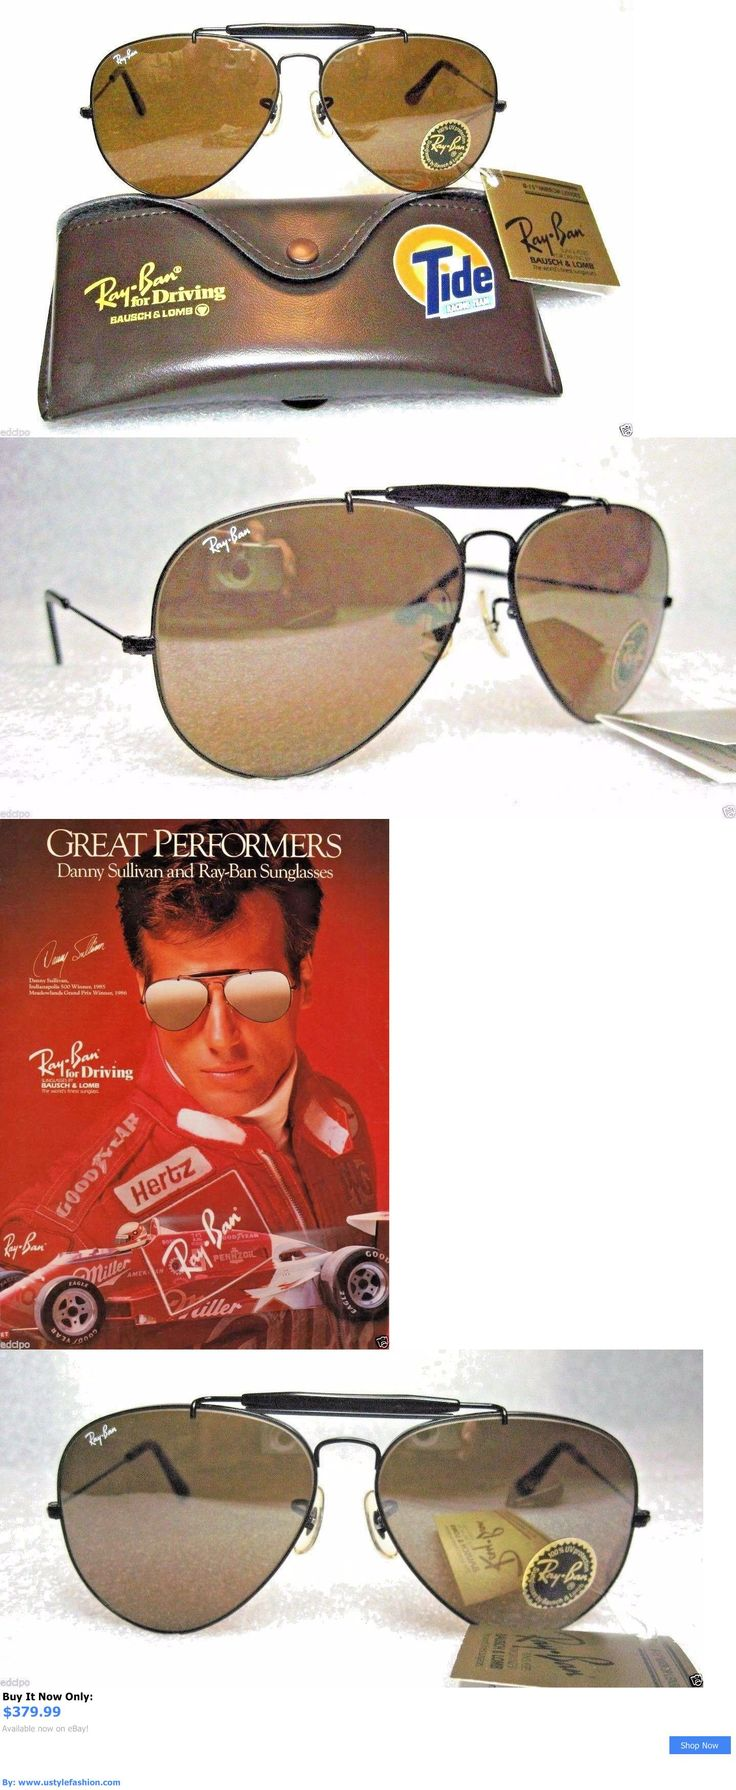 Vintage accessories: Vintage *Nos Ray-Ban Bandl Aviator Tide-Nascar Outdoorsman *Tgm *New Sunglasses BUY IT NOW ONLY: $379.99 #ustylefashionVintageaccessories OR #ustylefashion